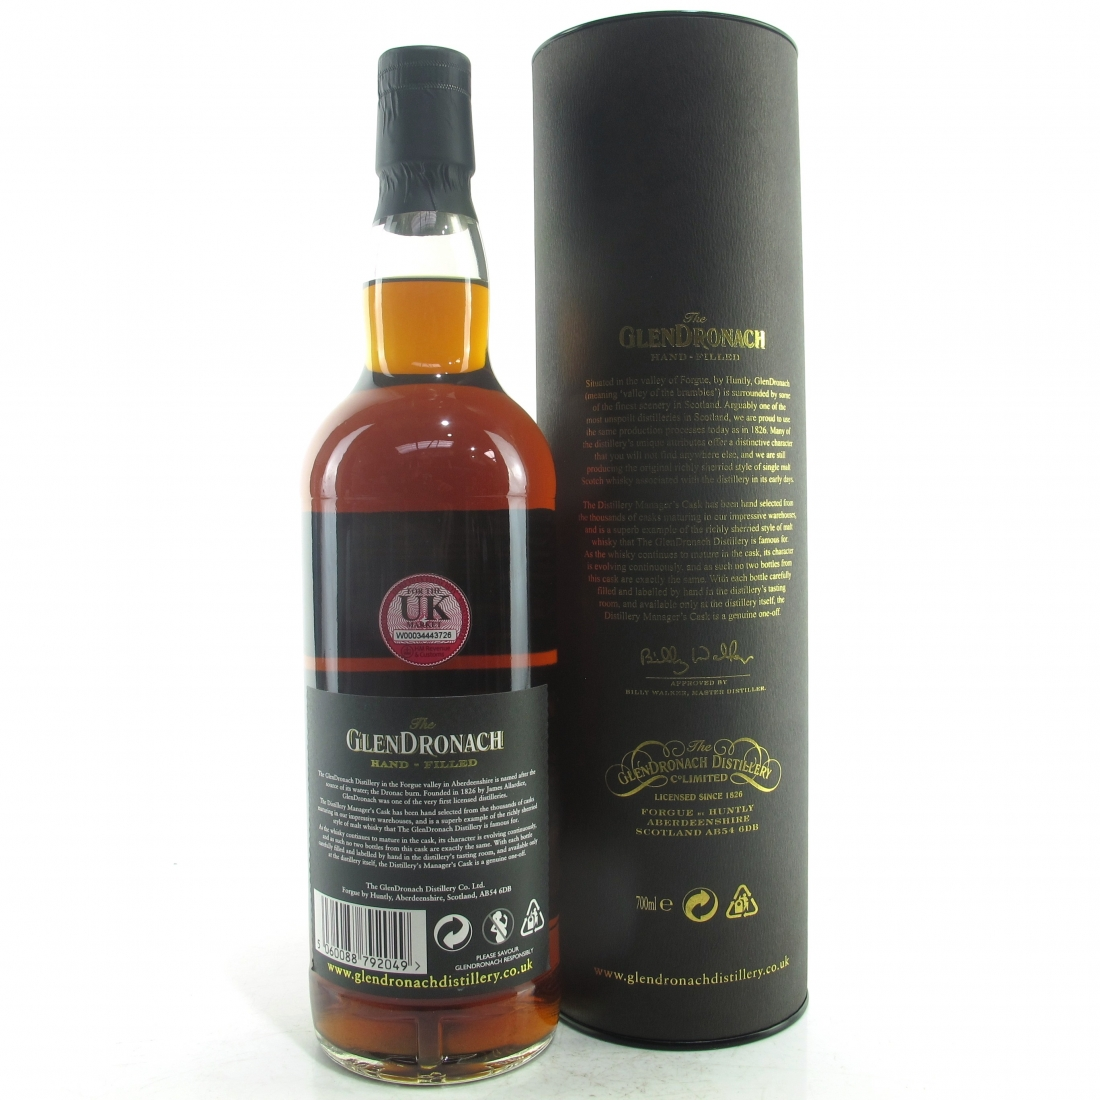 Glendronach 1993 Hand Filled 25 Year Old Cask #698